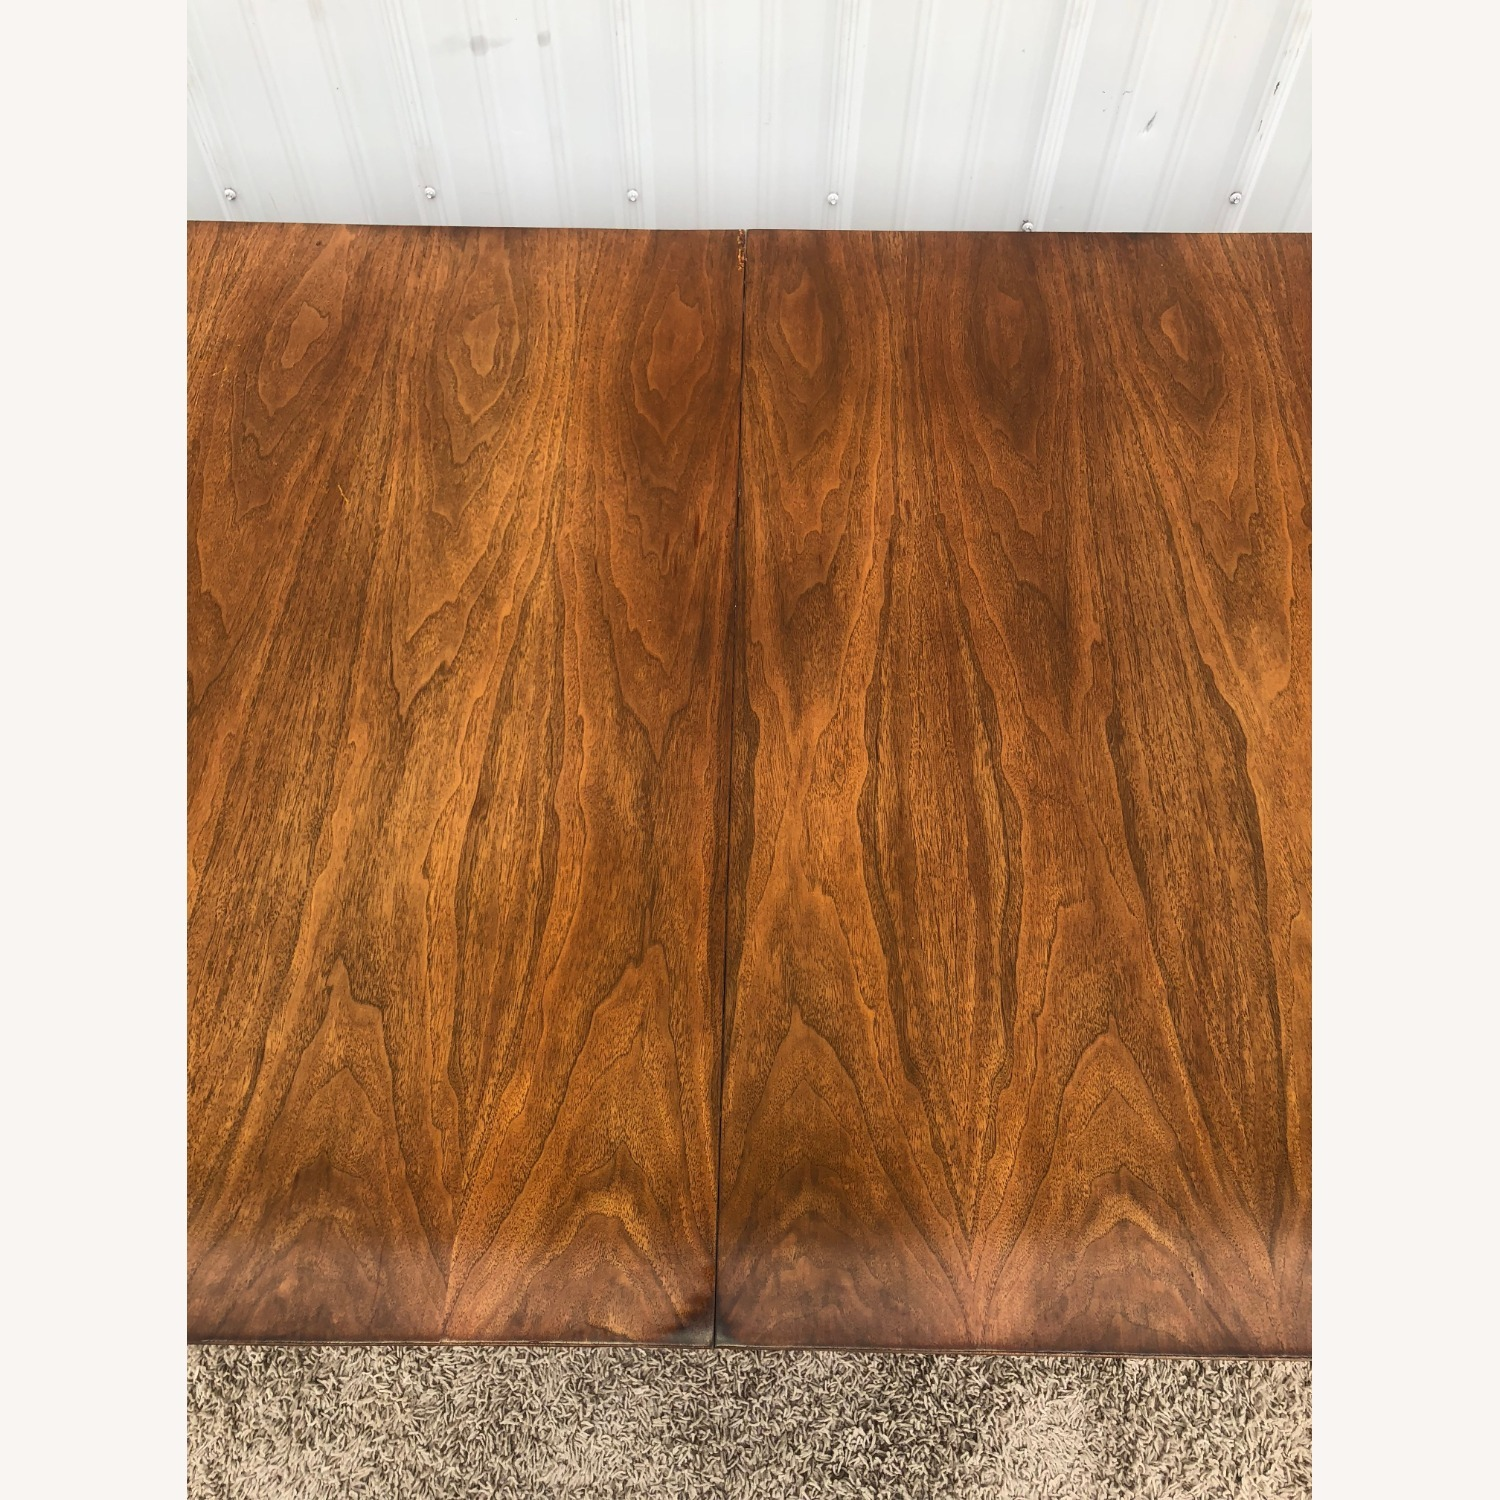 Mid Century Walnut Dining Table with 2 Leafs - image-4